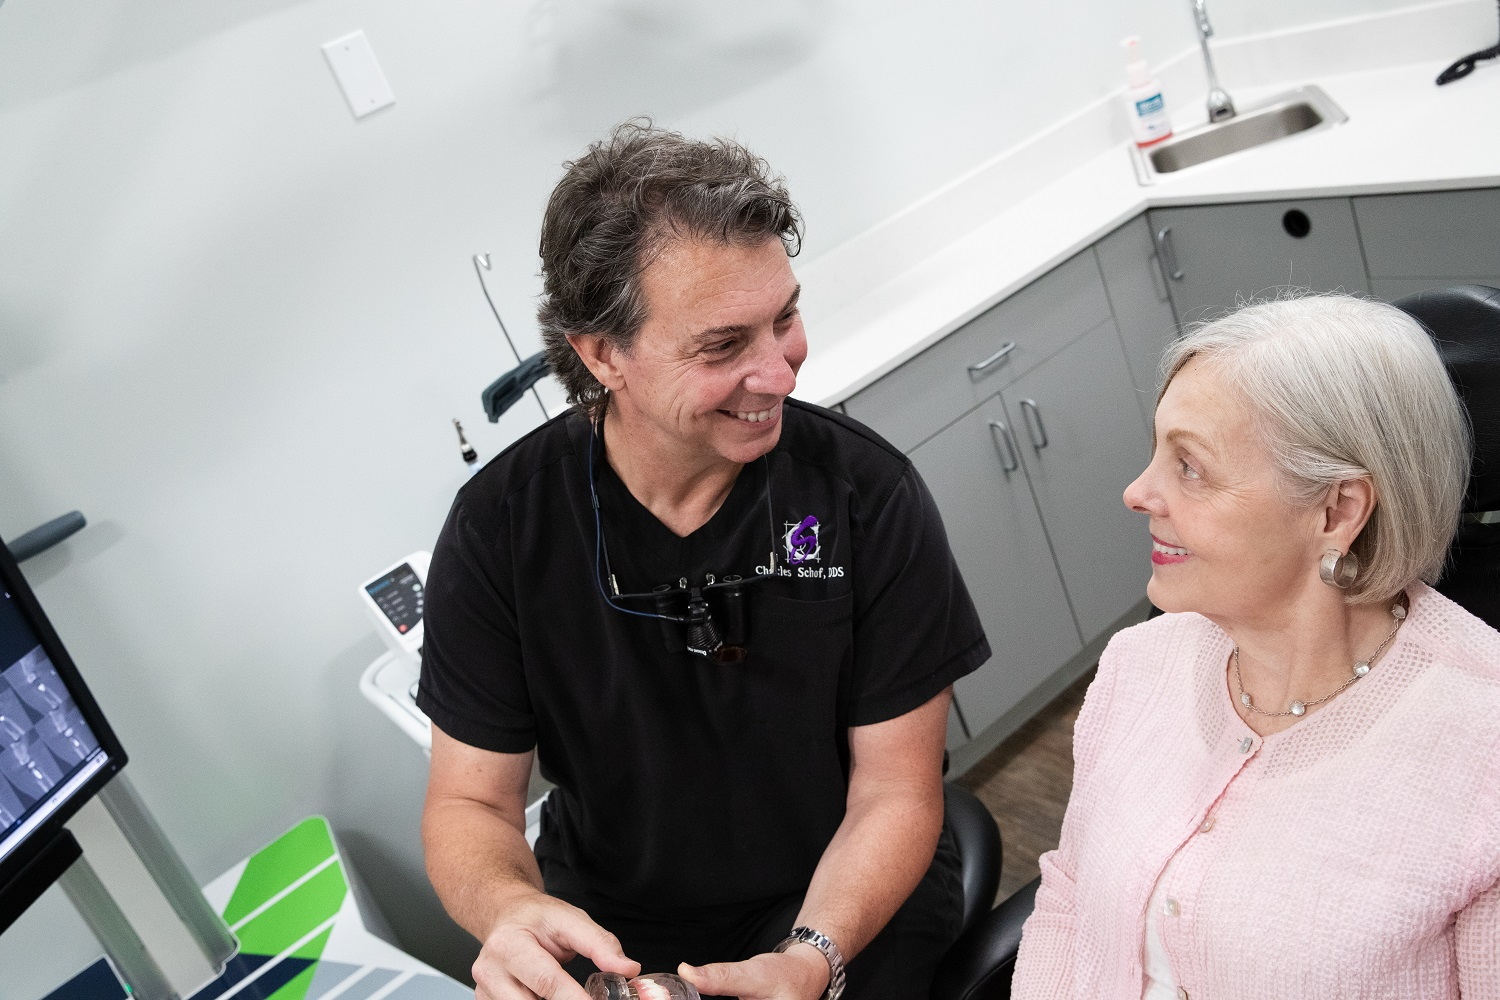 Dr. Schof speaking with a patient about teeth whitening